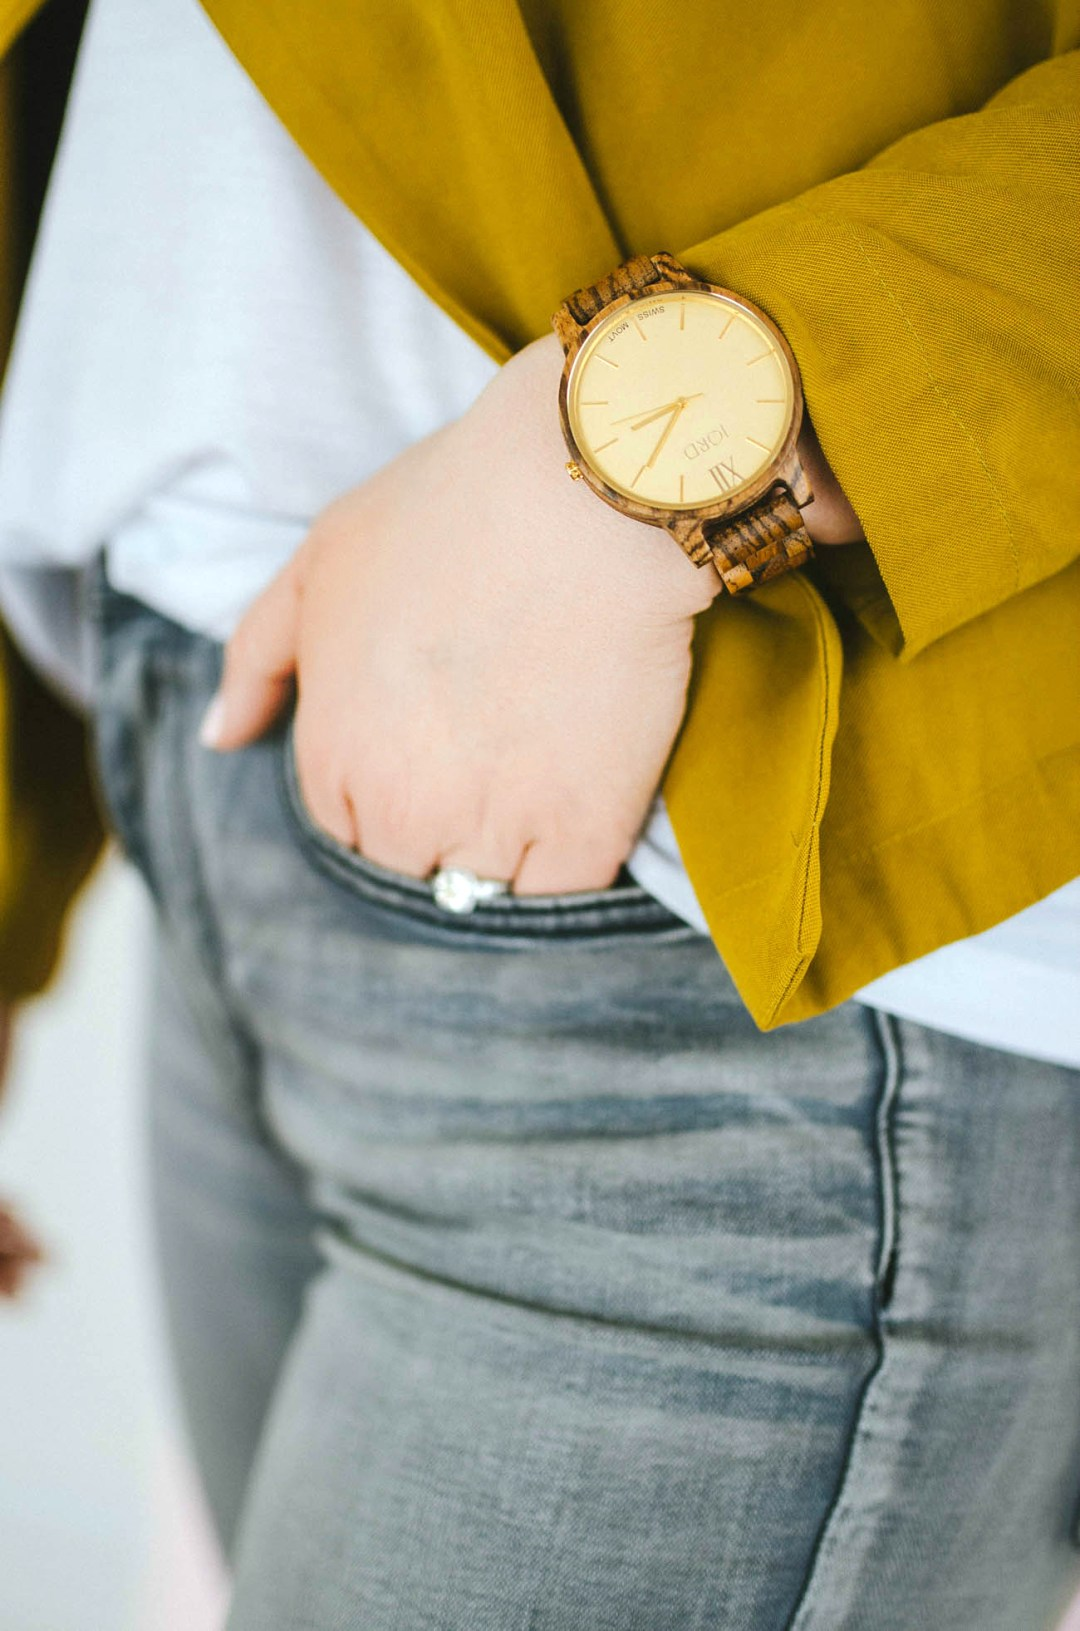 jord-watch-review-wood-watch-rosecitystyleguide-outfit-canadian-blogger-lifestyle-fashion-style